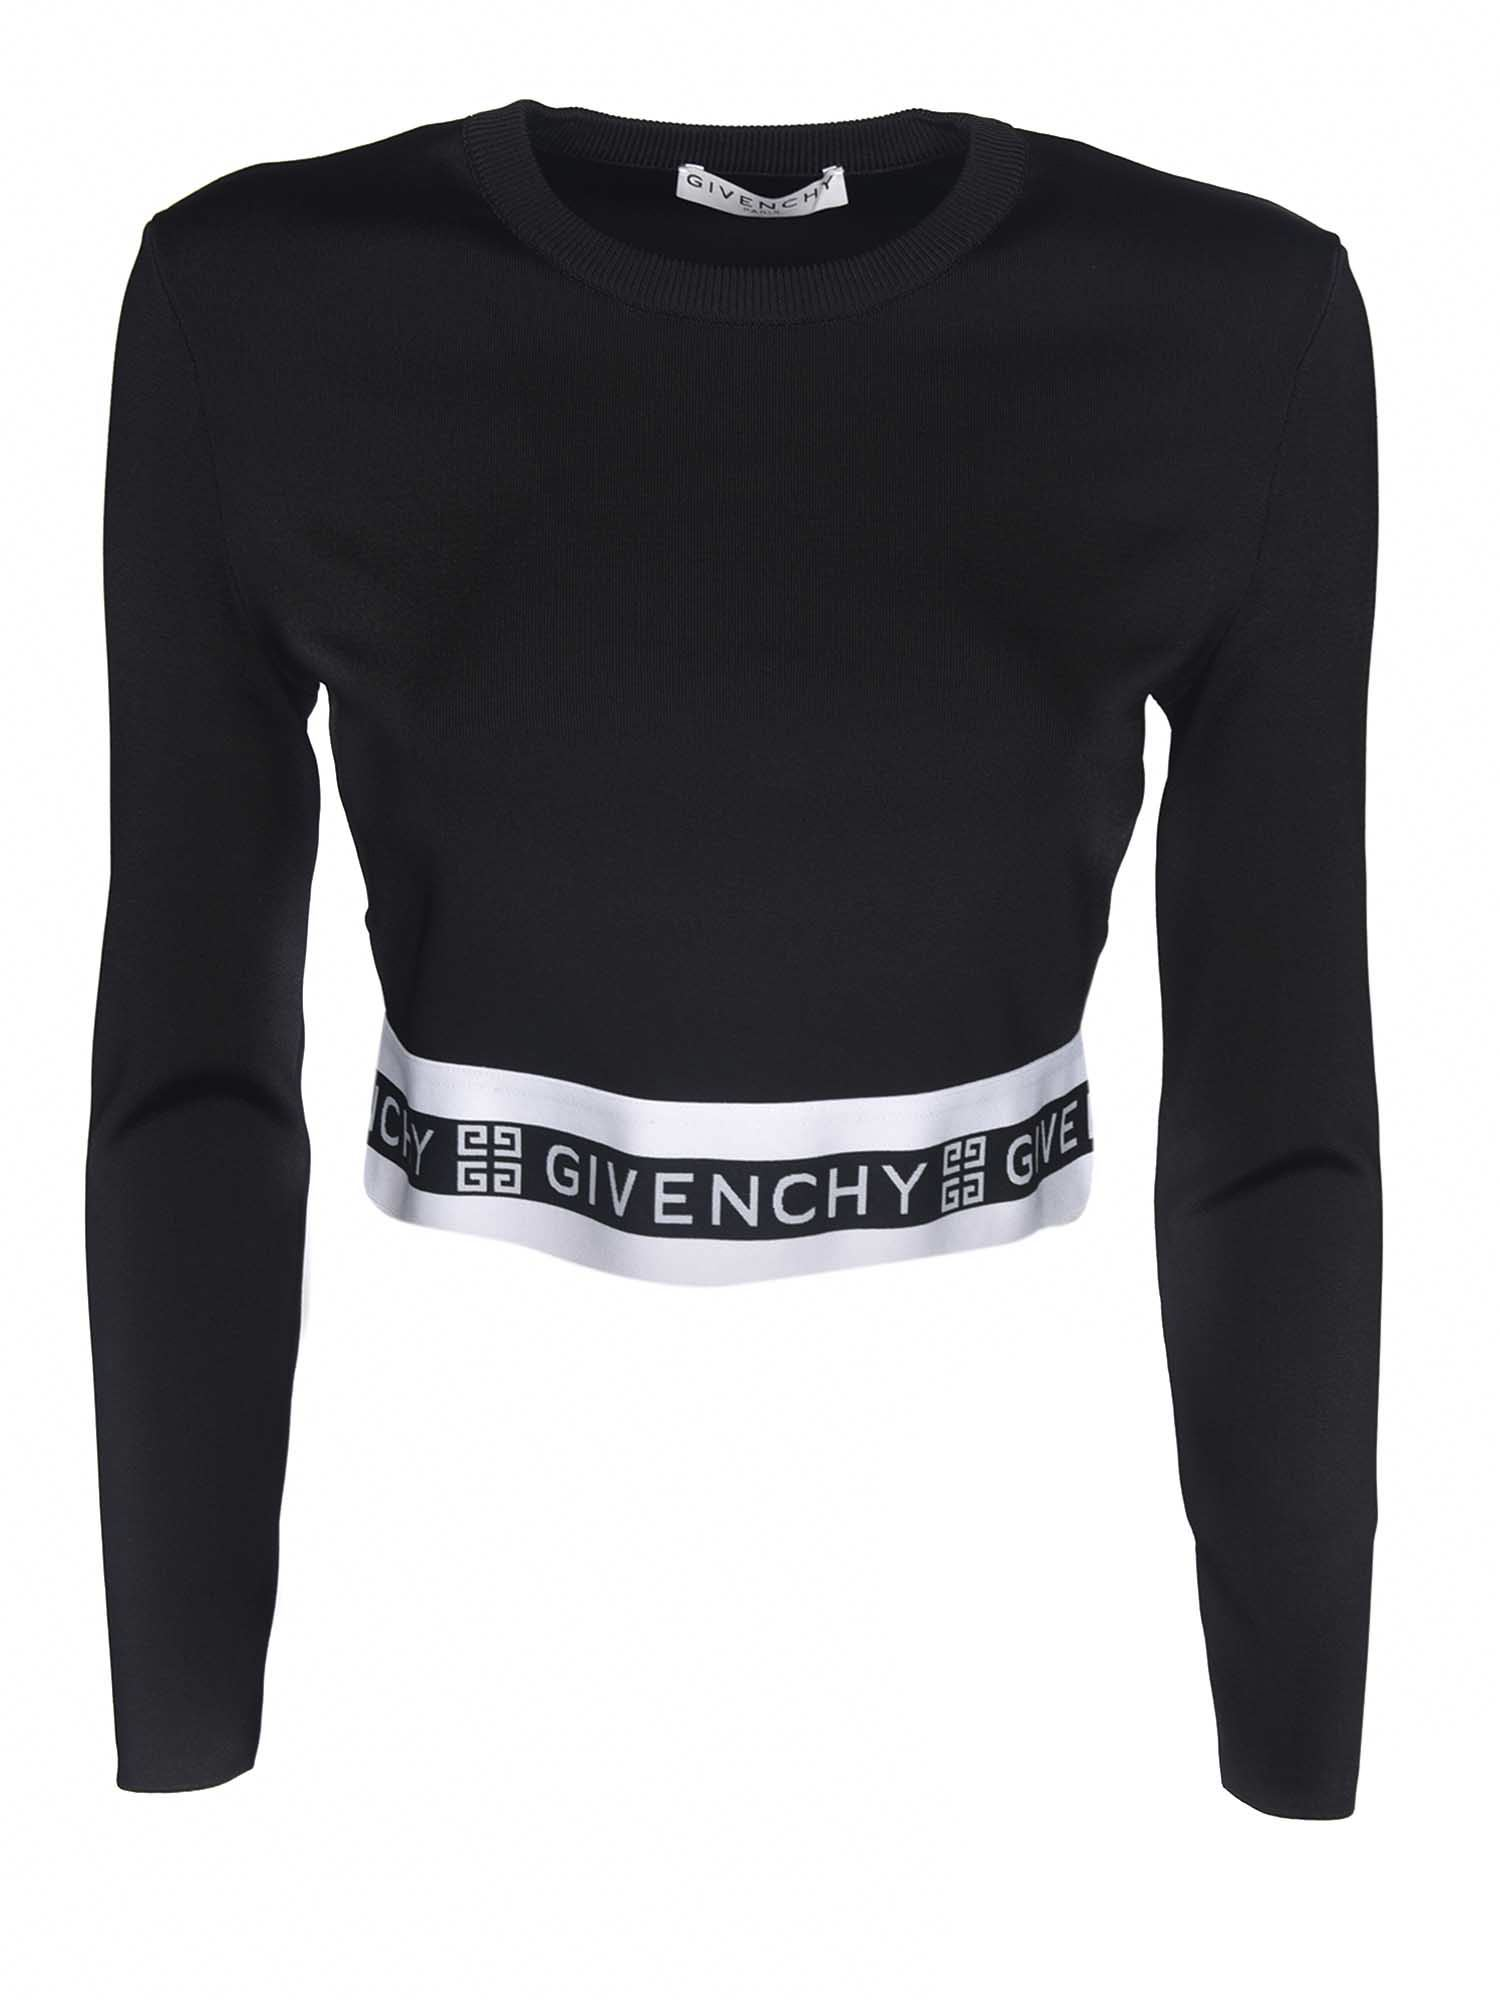 Givenchy LOGO CROP T-SHIRT IN BLACK